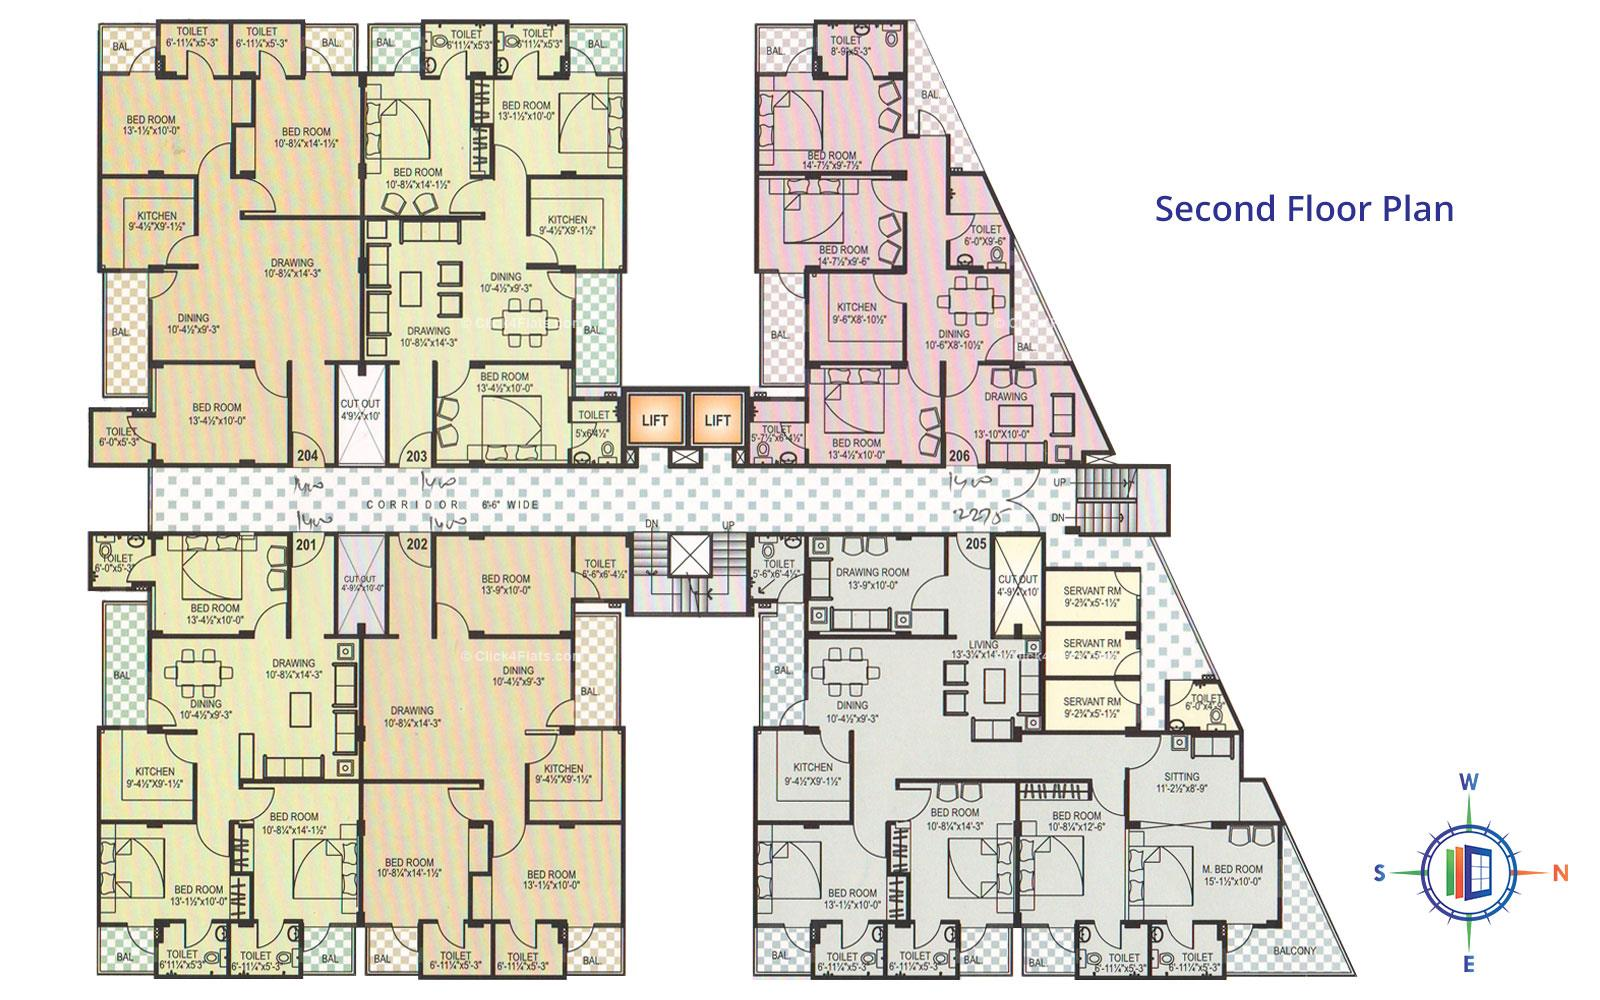 Pearl Orchid Second Floor Plan